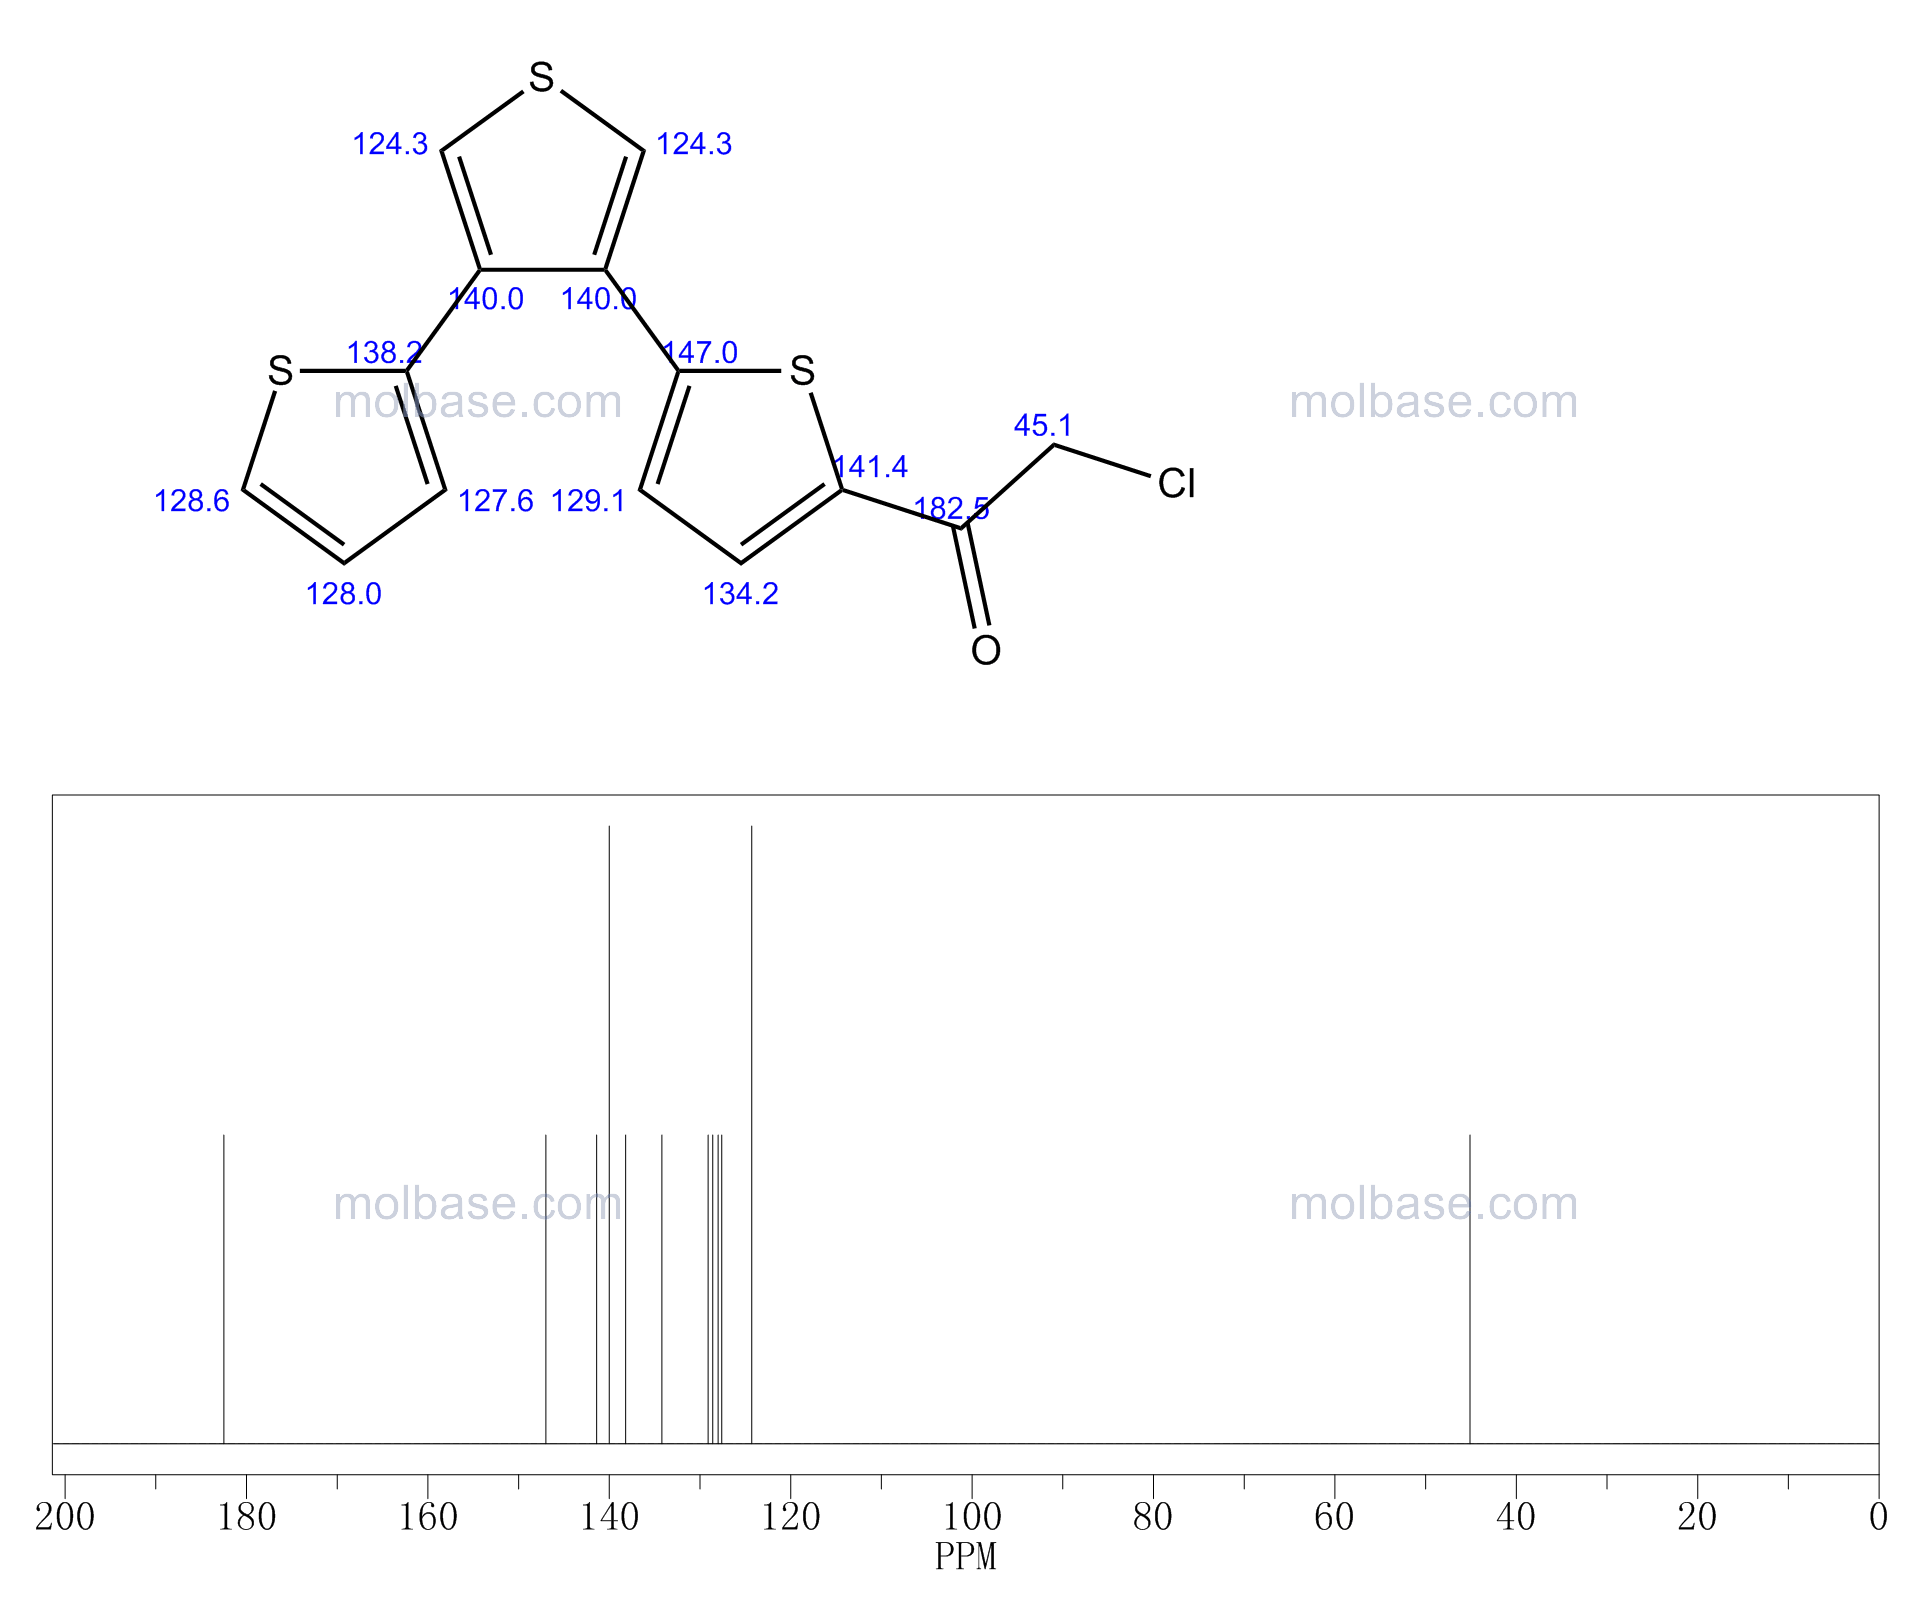 2-chloro-1-[5-(4-thiophen-2-ylthiophen-3-yl)thiophen-2-yl]ethanone NMR spectra analysis, Chemical CAS NO. 114049-74-0 NMR spectral analysis, 2-chloro-1-[5-(4-thiophen-2-ylthiophen-3-yl)thiophen-2-yl]ethanone C-NMR spectrum